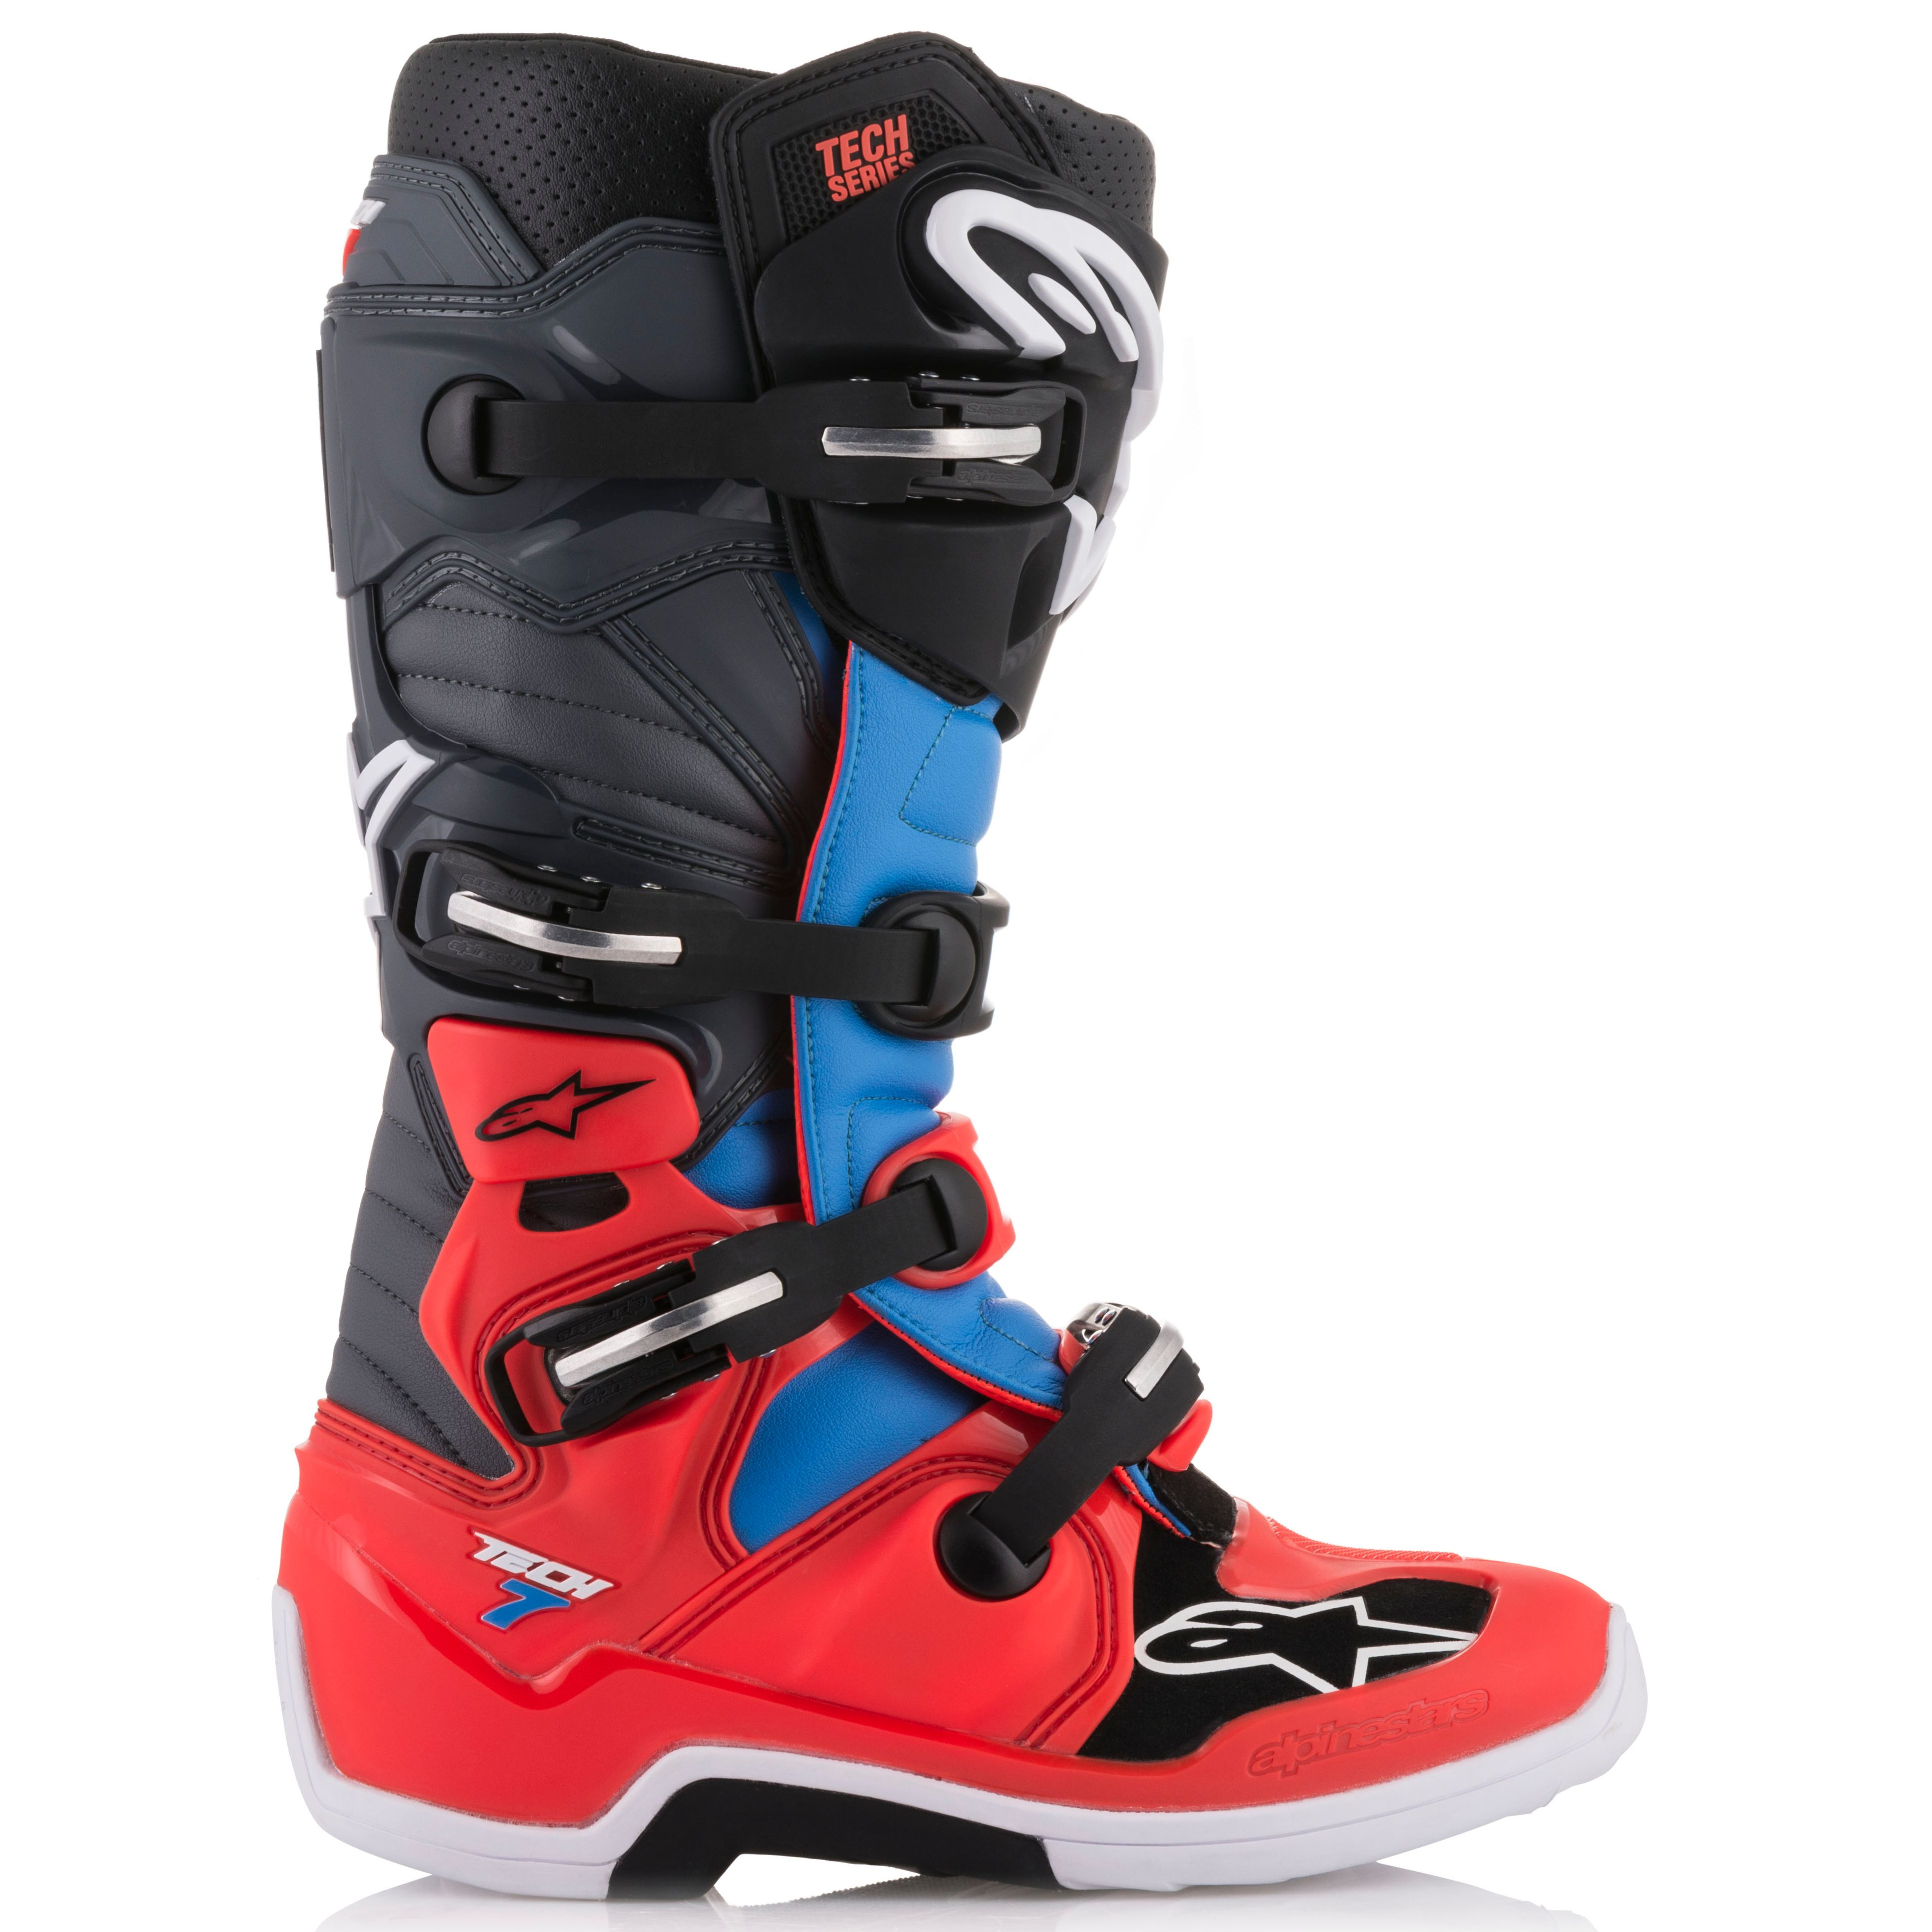 Bottes cross Alpinestars TECH 7 - RED FLUO CYAN GRAY BLACK 2021